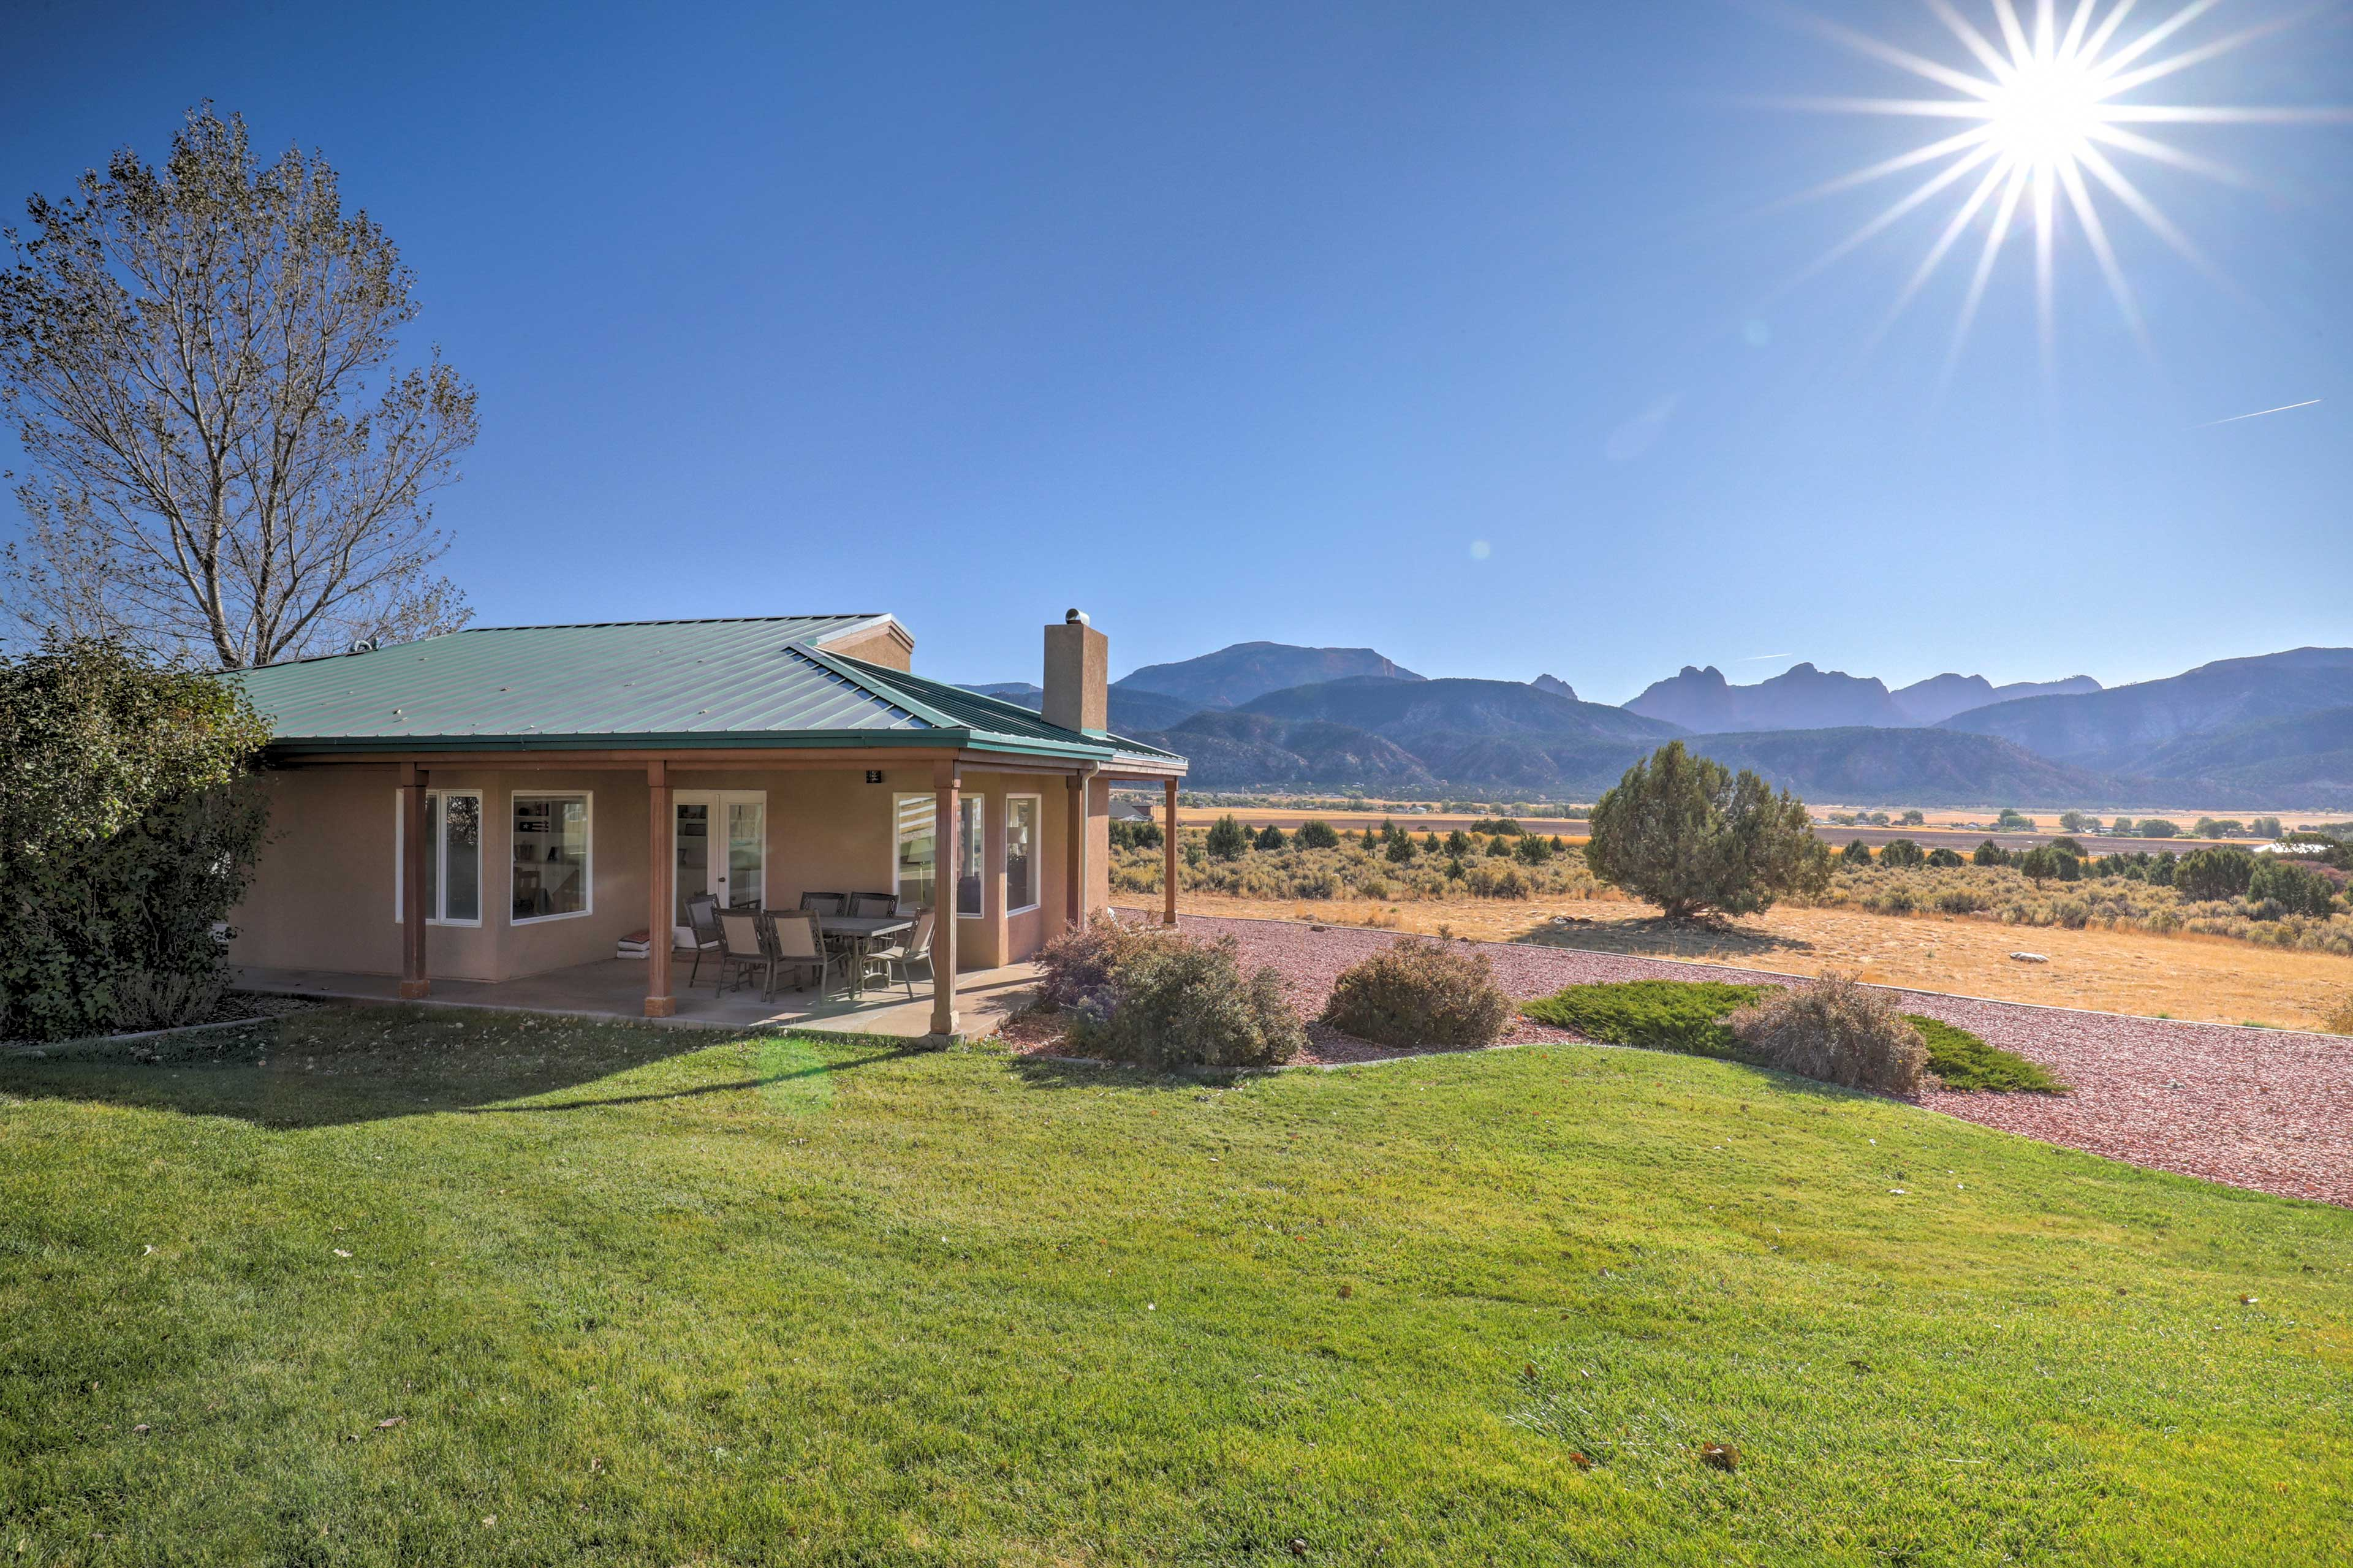 Stunning views of the Kolob Canyons highlight this scenic 19-acre property.